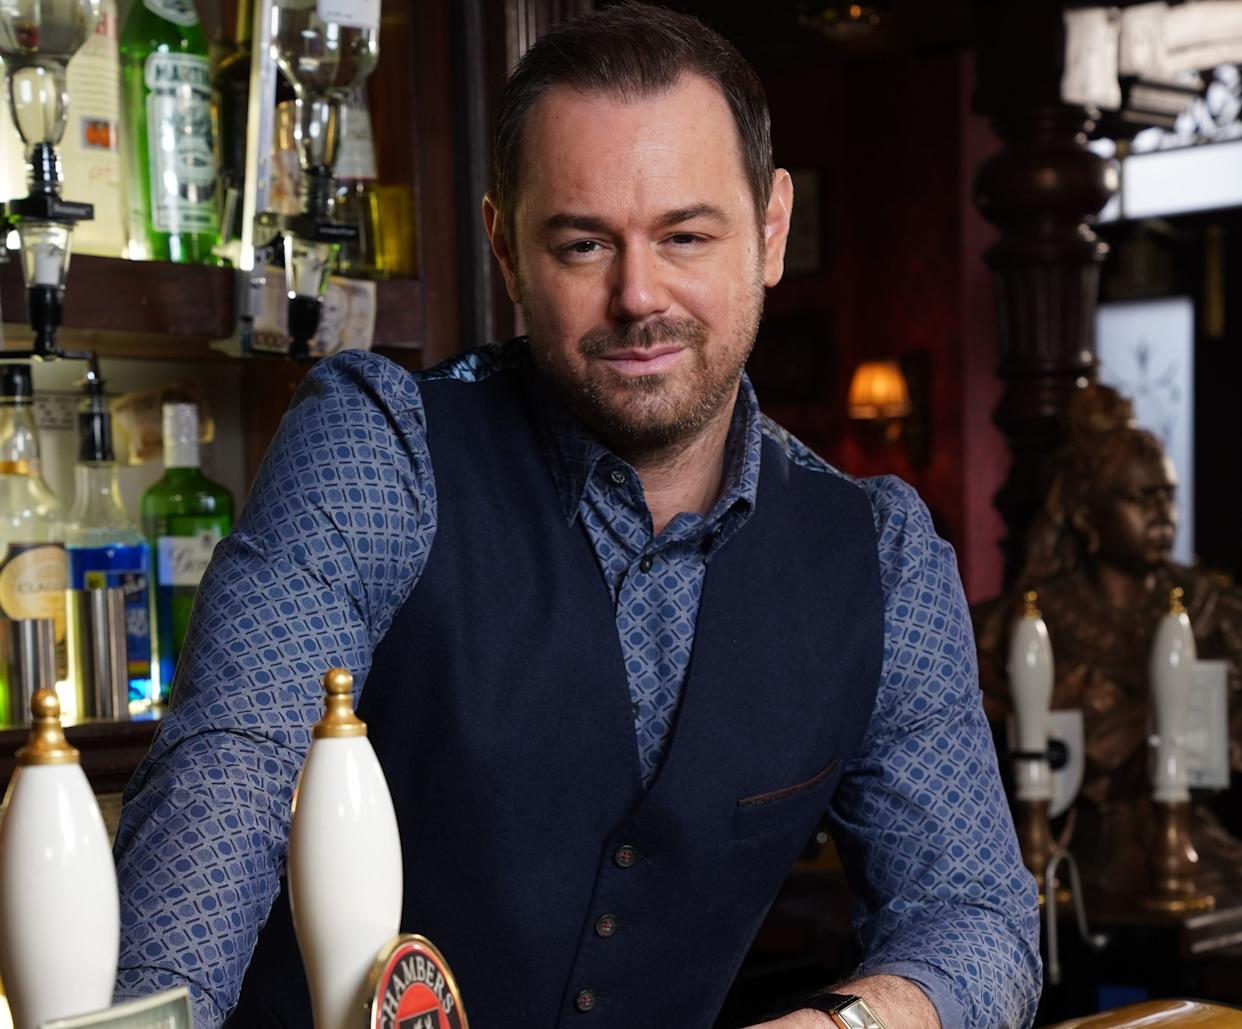 Danny Dyer stars as Queen Vic landlord Mick Carter in EastEnders. (BBC)